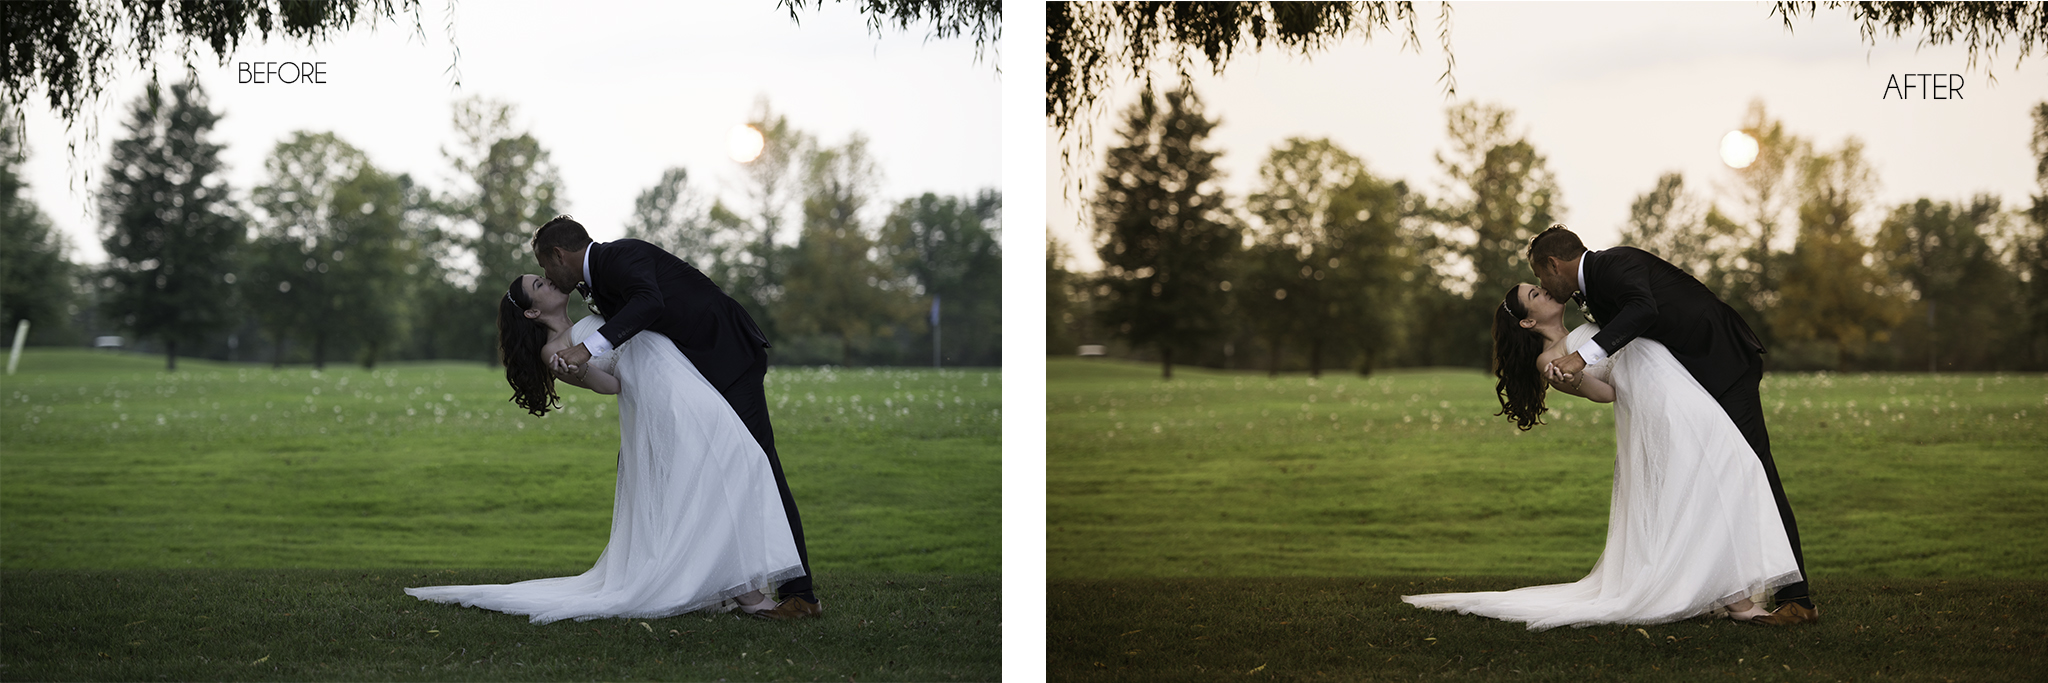 Wedding Photography in Buffalo